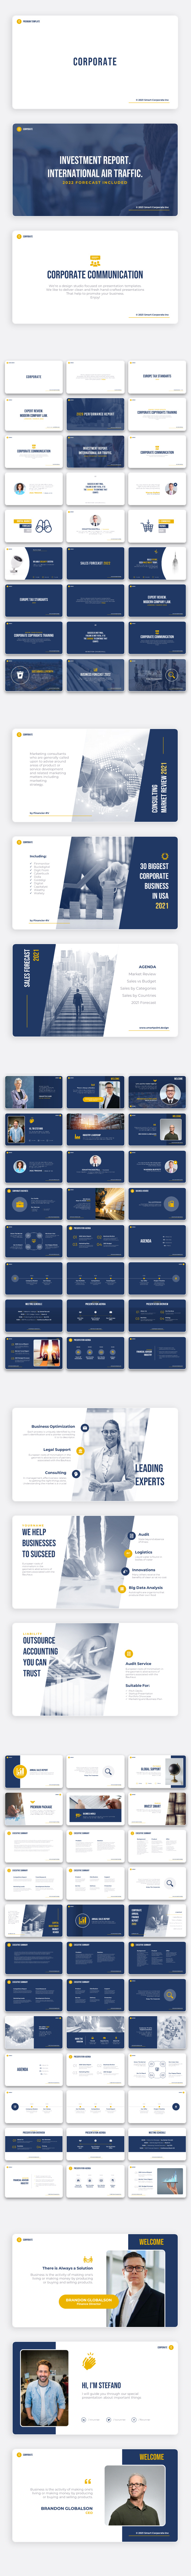 Corporate - Premium PowerPoint Template for Business - 2